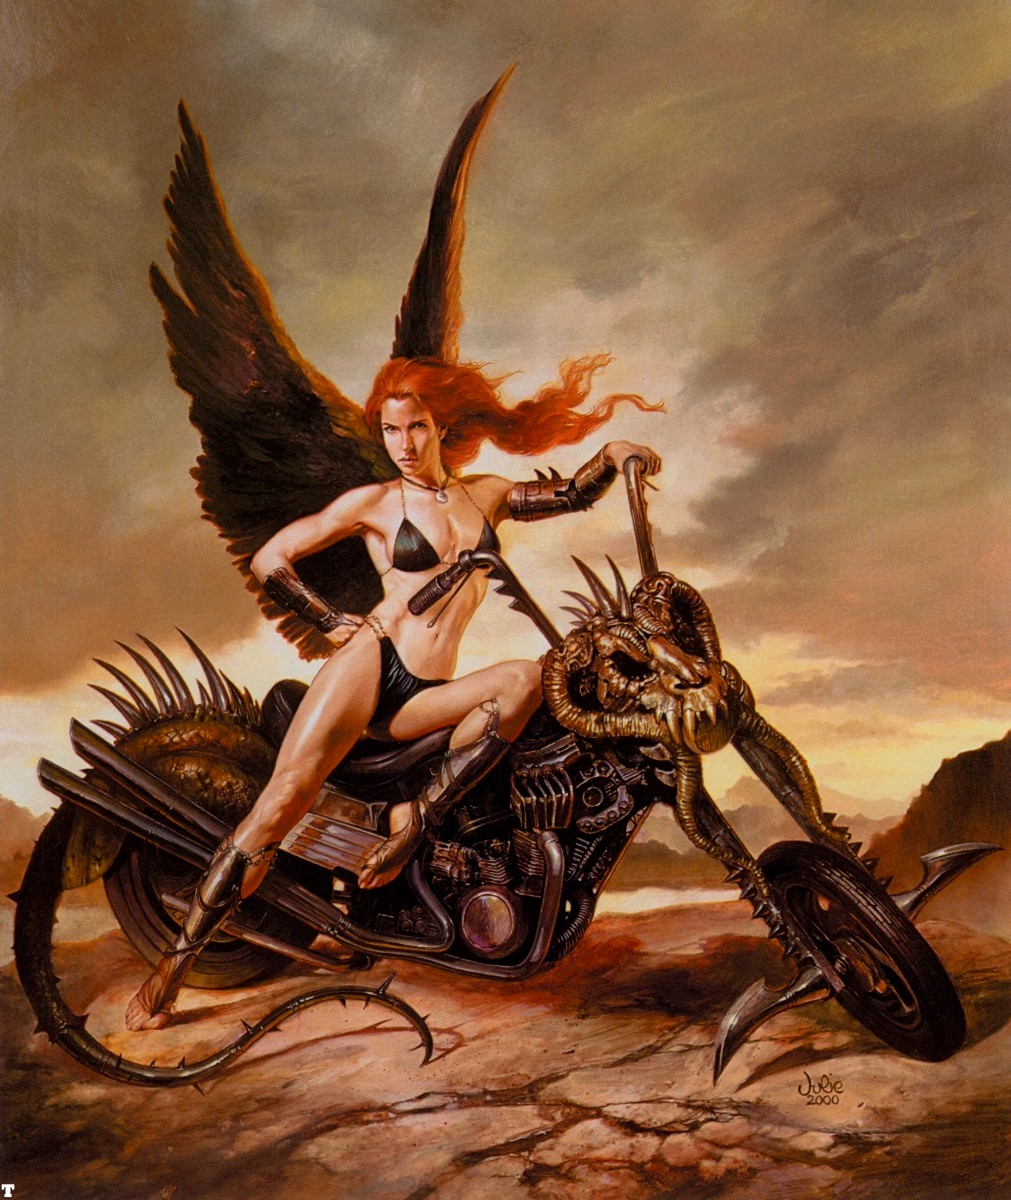 Nude women on motorcycle fantasy art hentia images